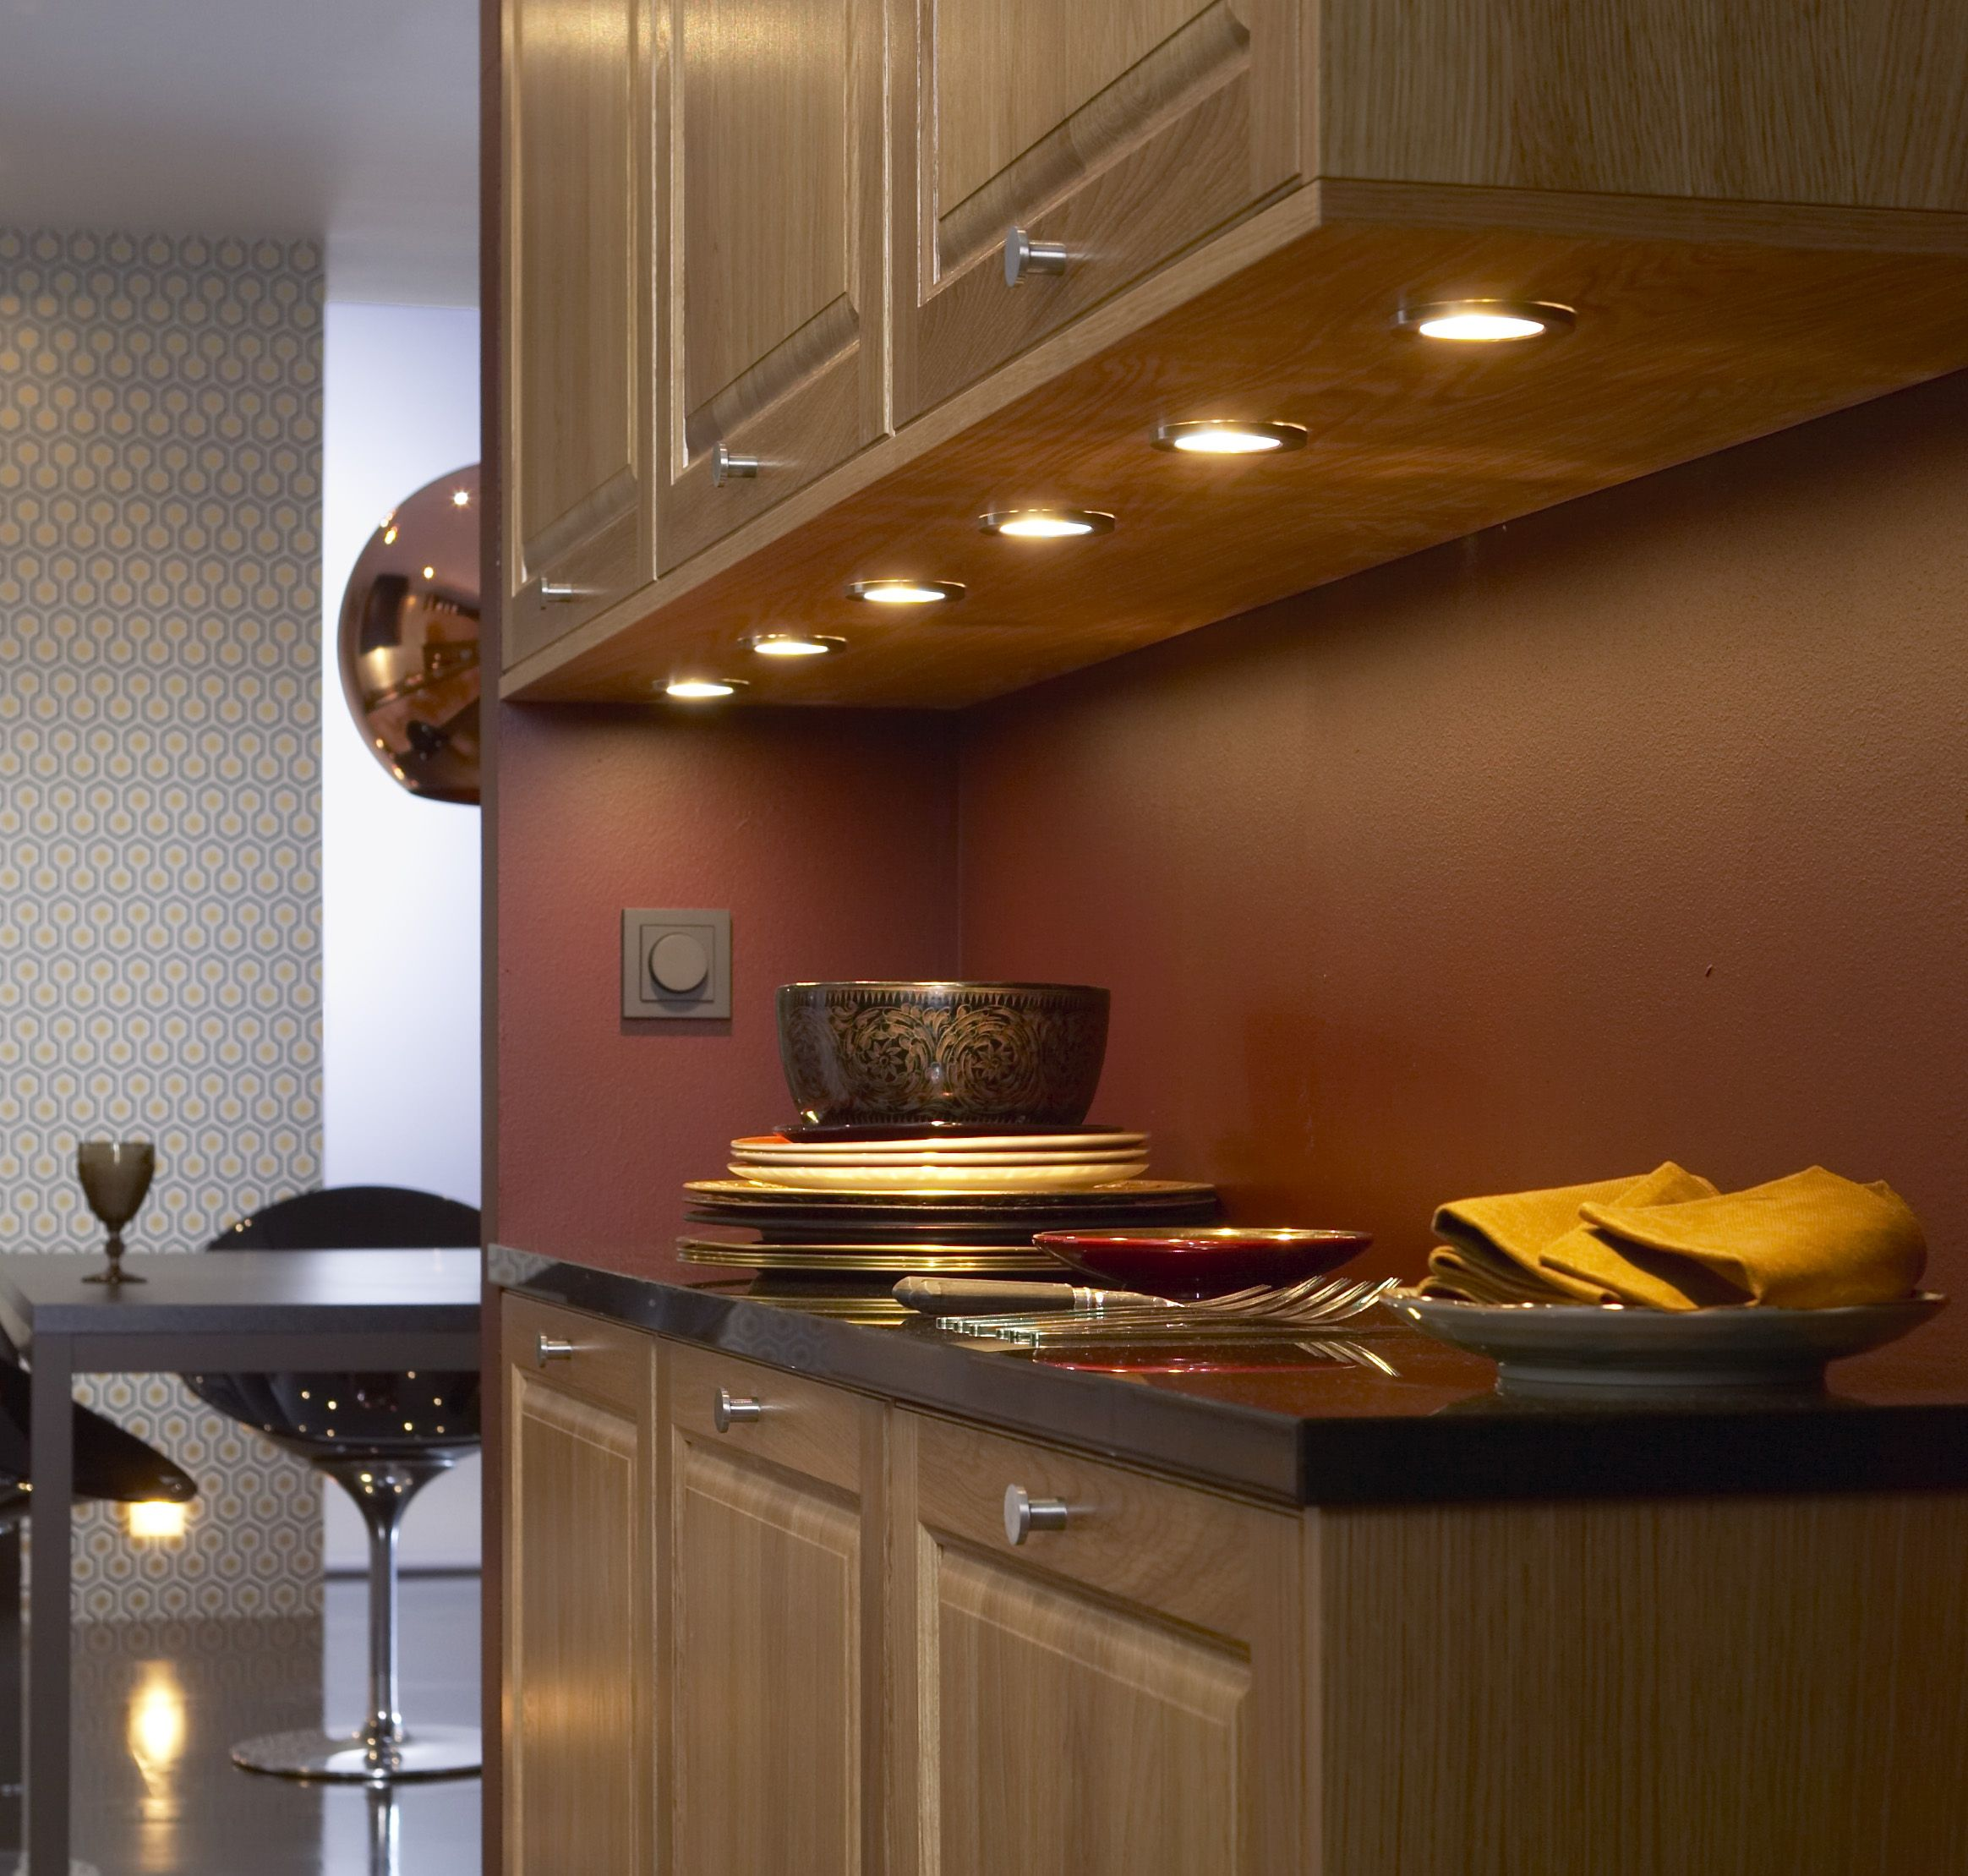 The Awesome and Gorgeous Kitchen Under Cabinet Light Fitting with